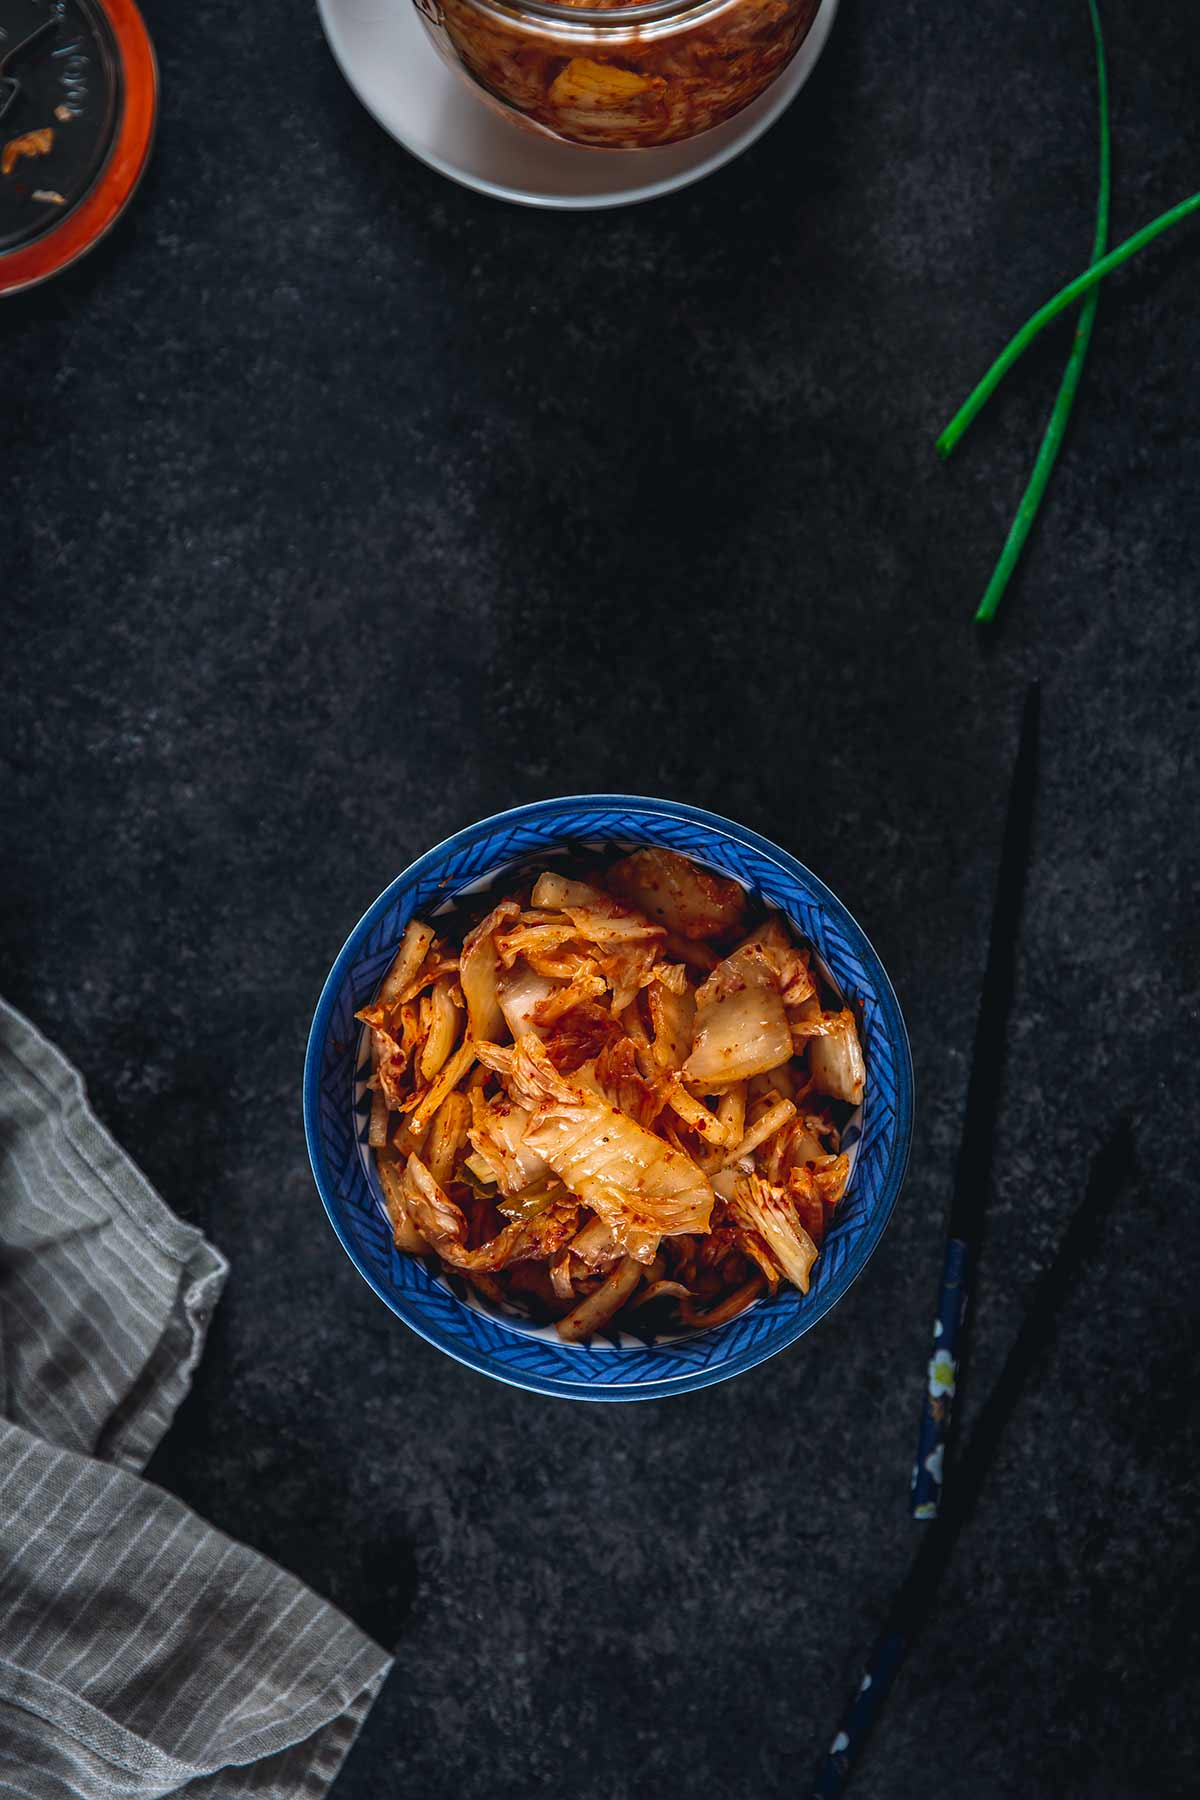 Homemade Kimchi in a bowl